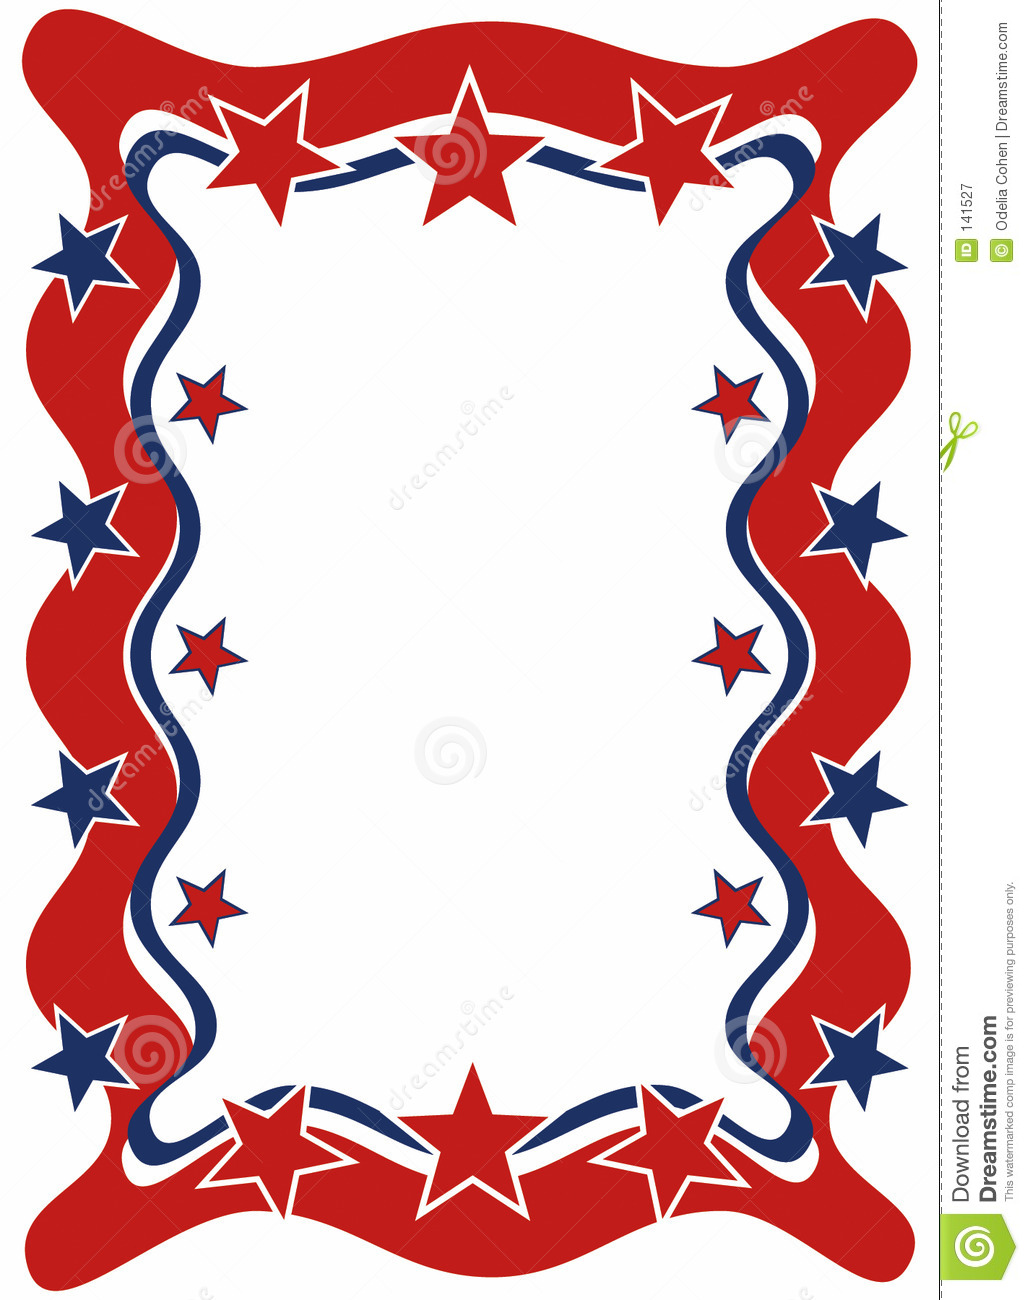 Free vector clipart fourth of july border vector royalty free download Fourth Of July Border | Free download best Fourth Of July Border on ... vector royalty free download